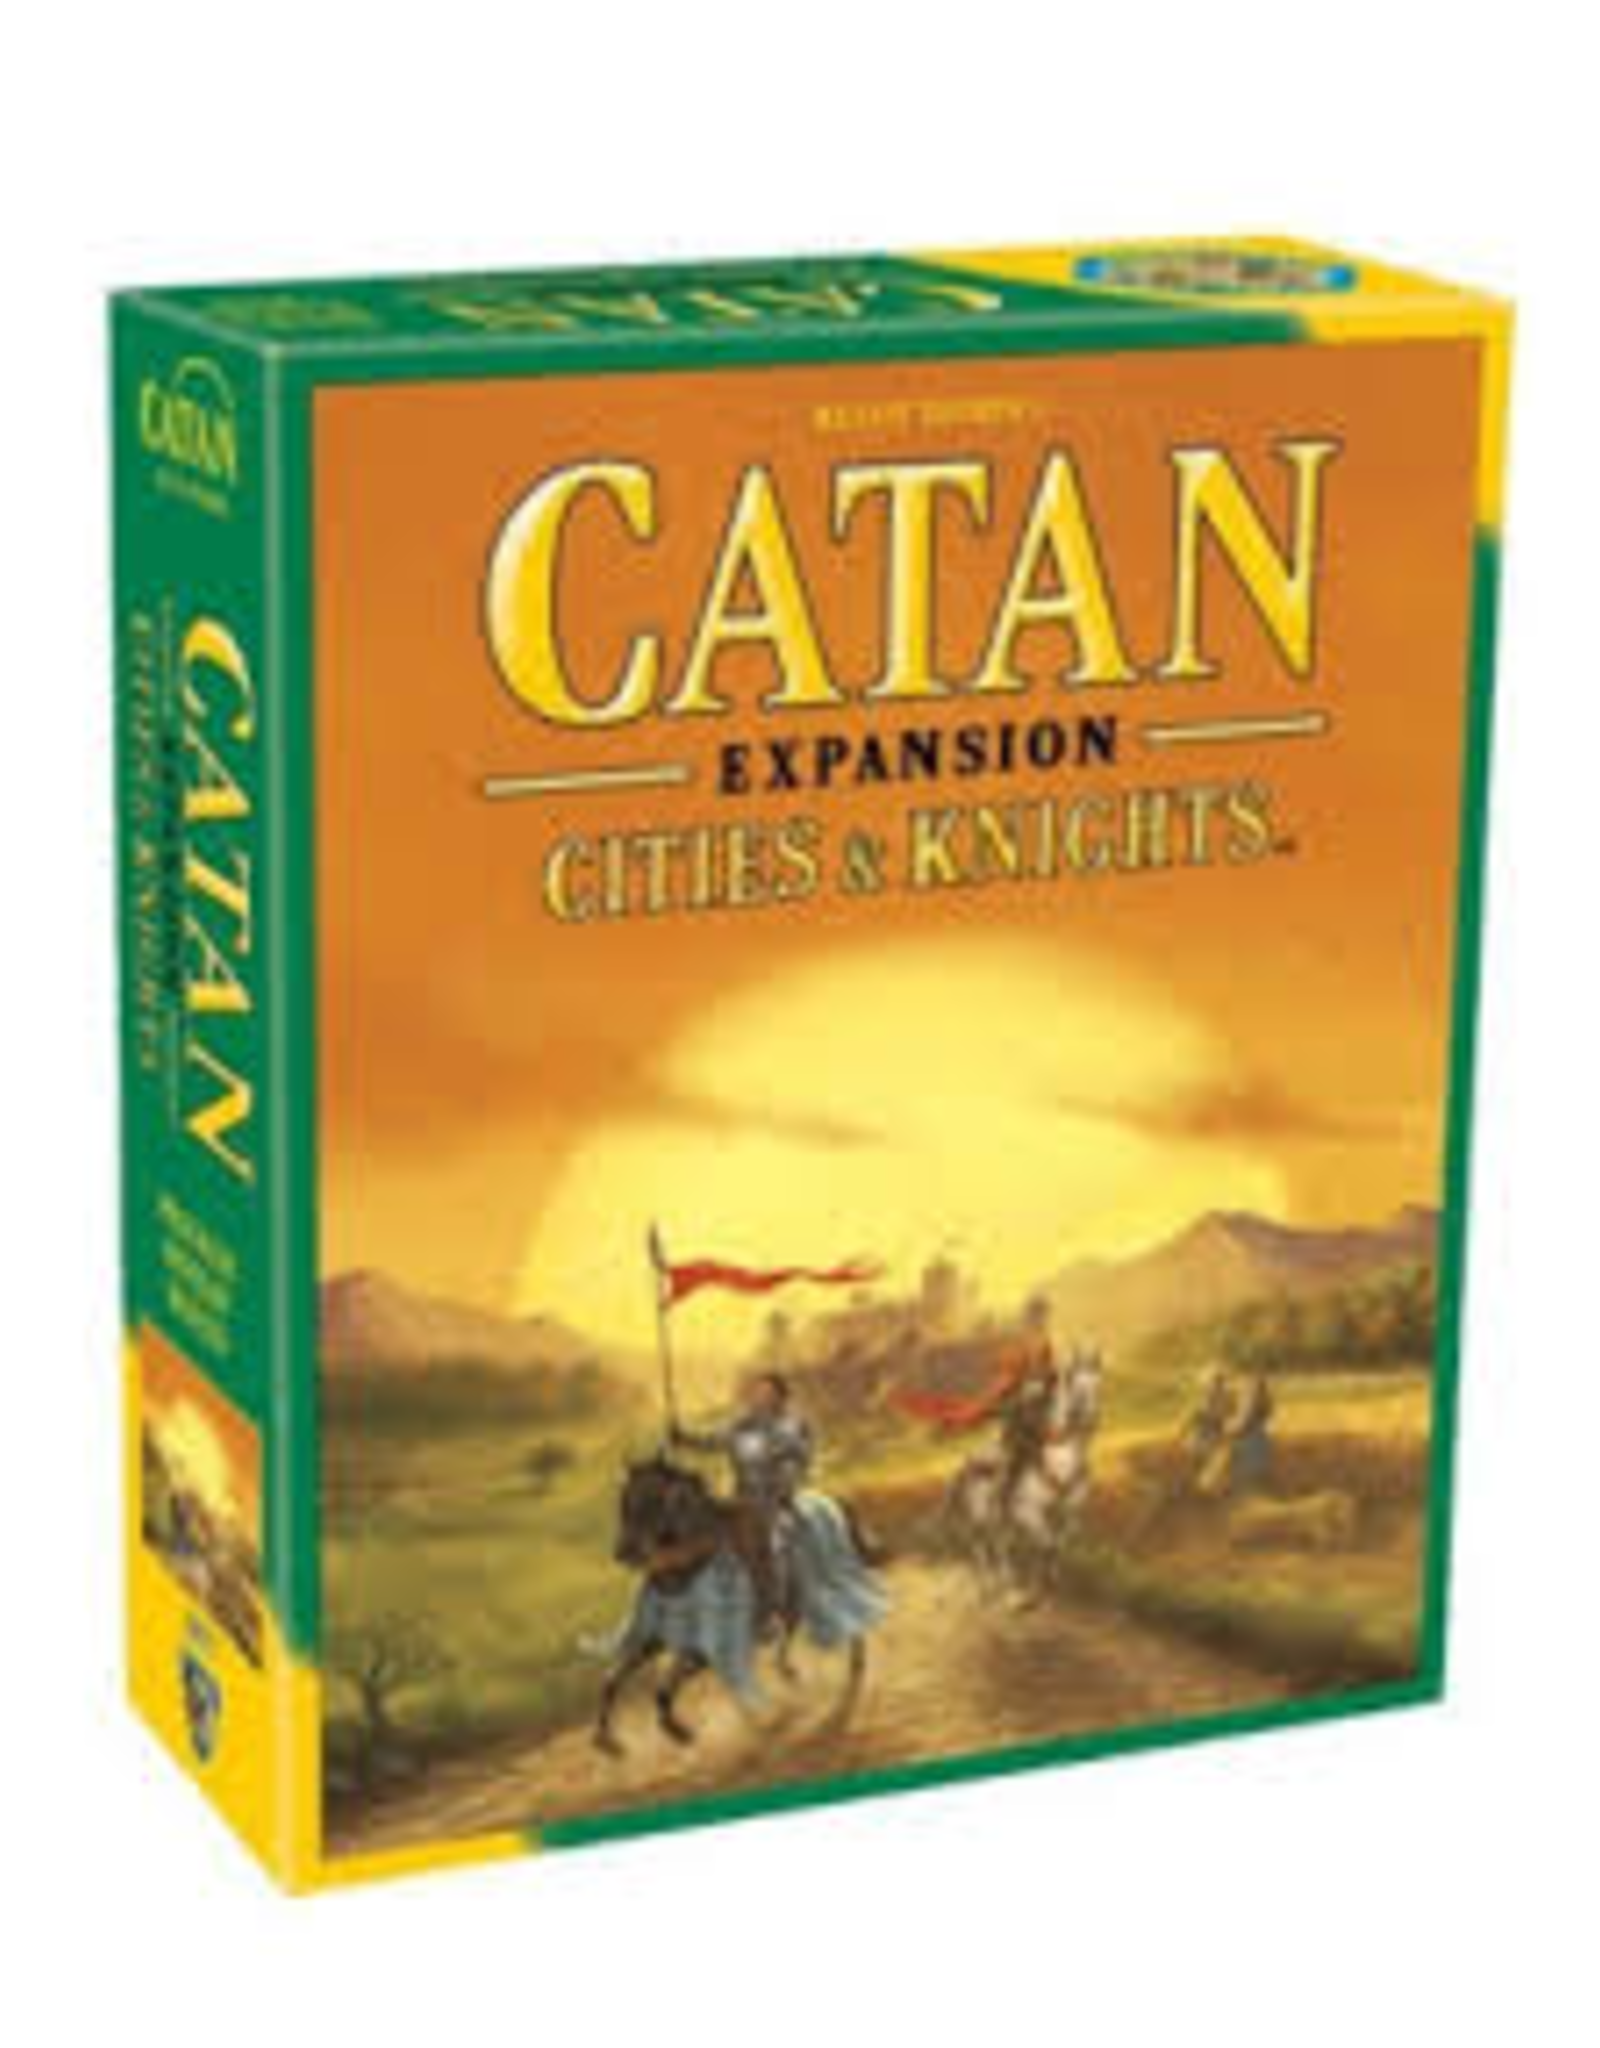 Catan expansion: cities & knights- asmodee